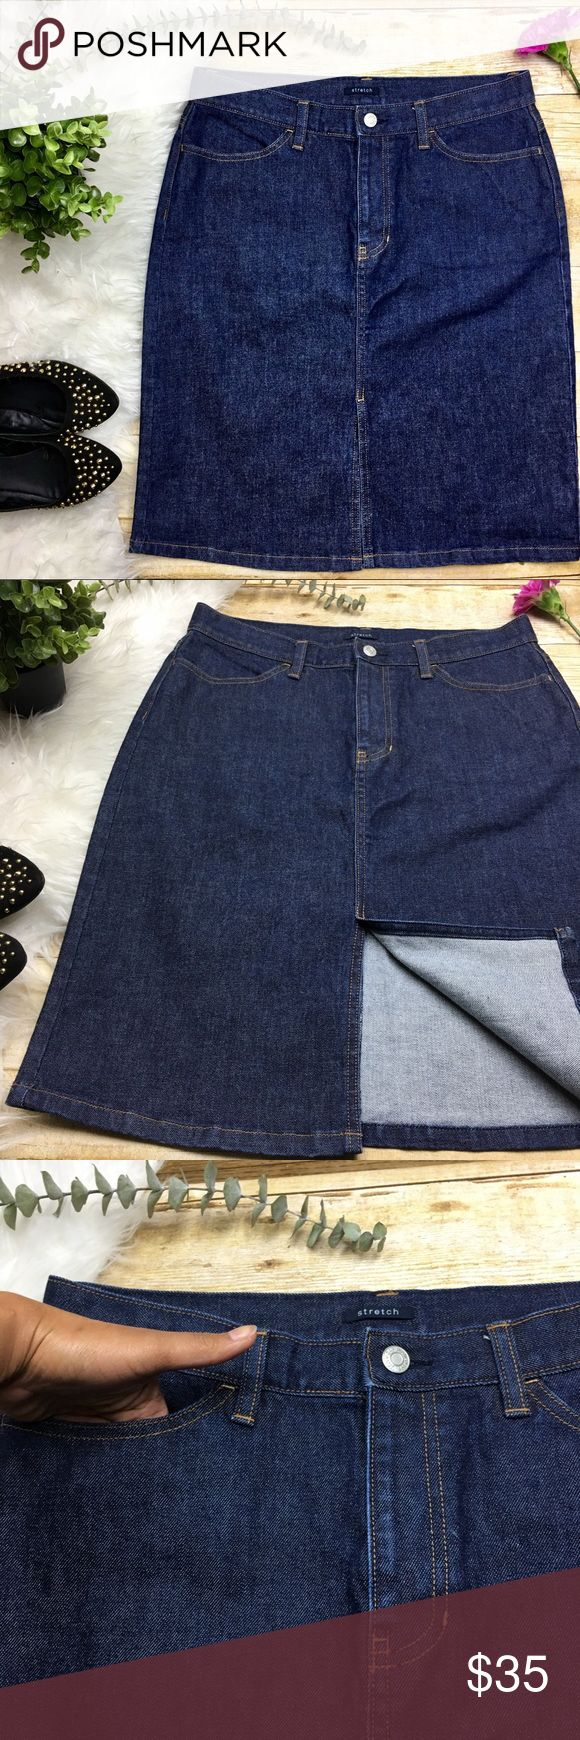 GAP Front Split Stretch Dark Wash Denim Skirt GAP Front Split Stretch Dark Wash Denim Skirt   Size 10  98% cotton 2% spandex  In excellent condition! 4 Pockets  Front split  Waist: 15 1/2 inches  Length: 23 inches GAP Skirts